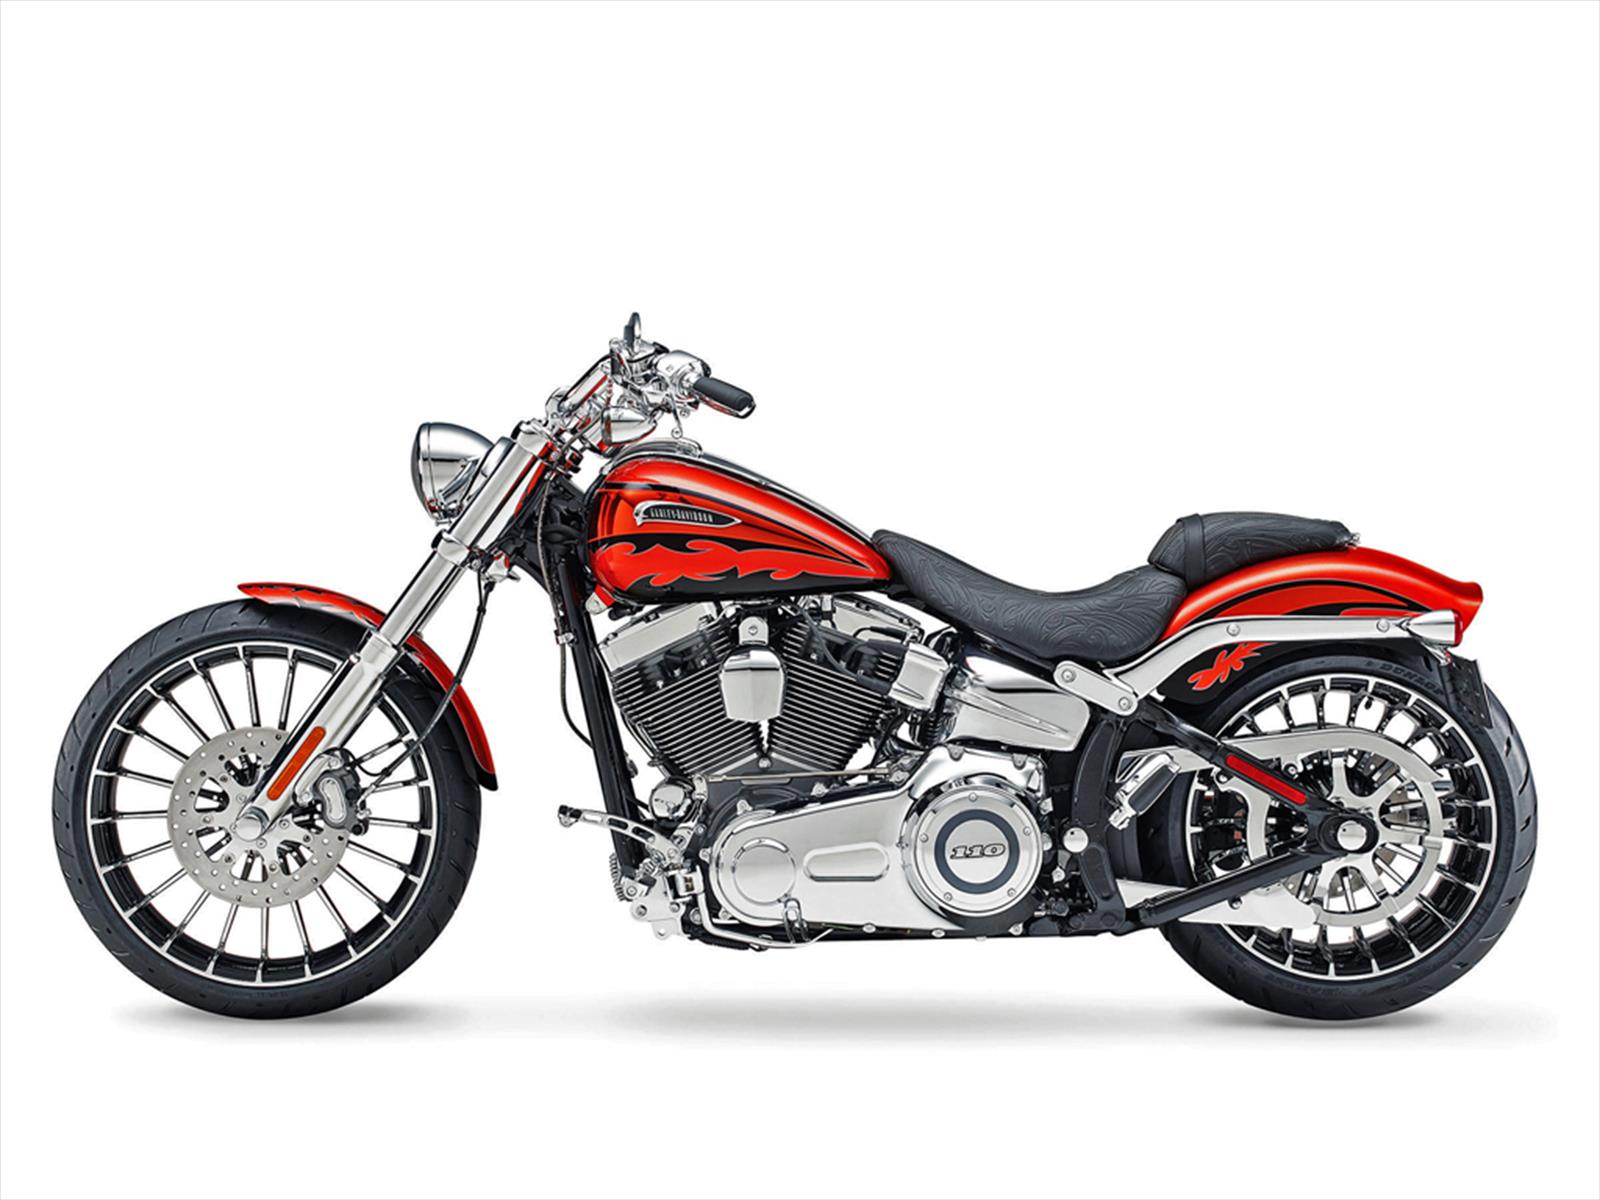 Harley Davidson Fxsb Breakout Pics Specs And List Of